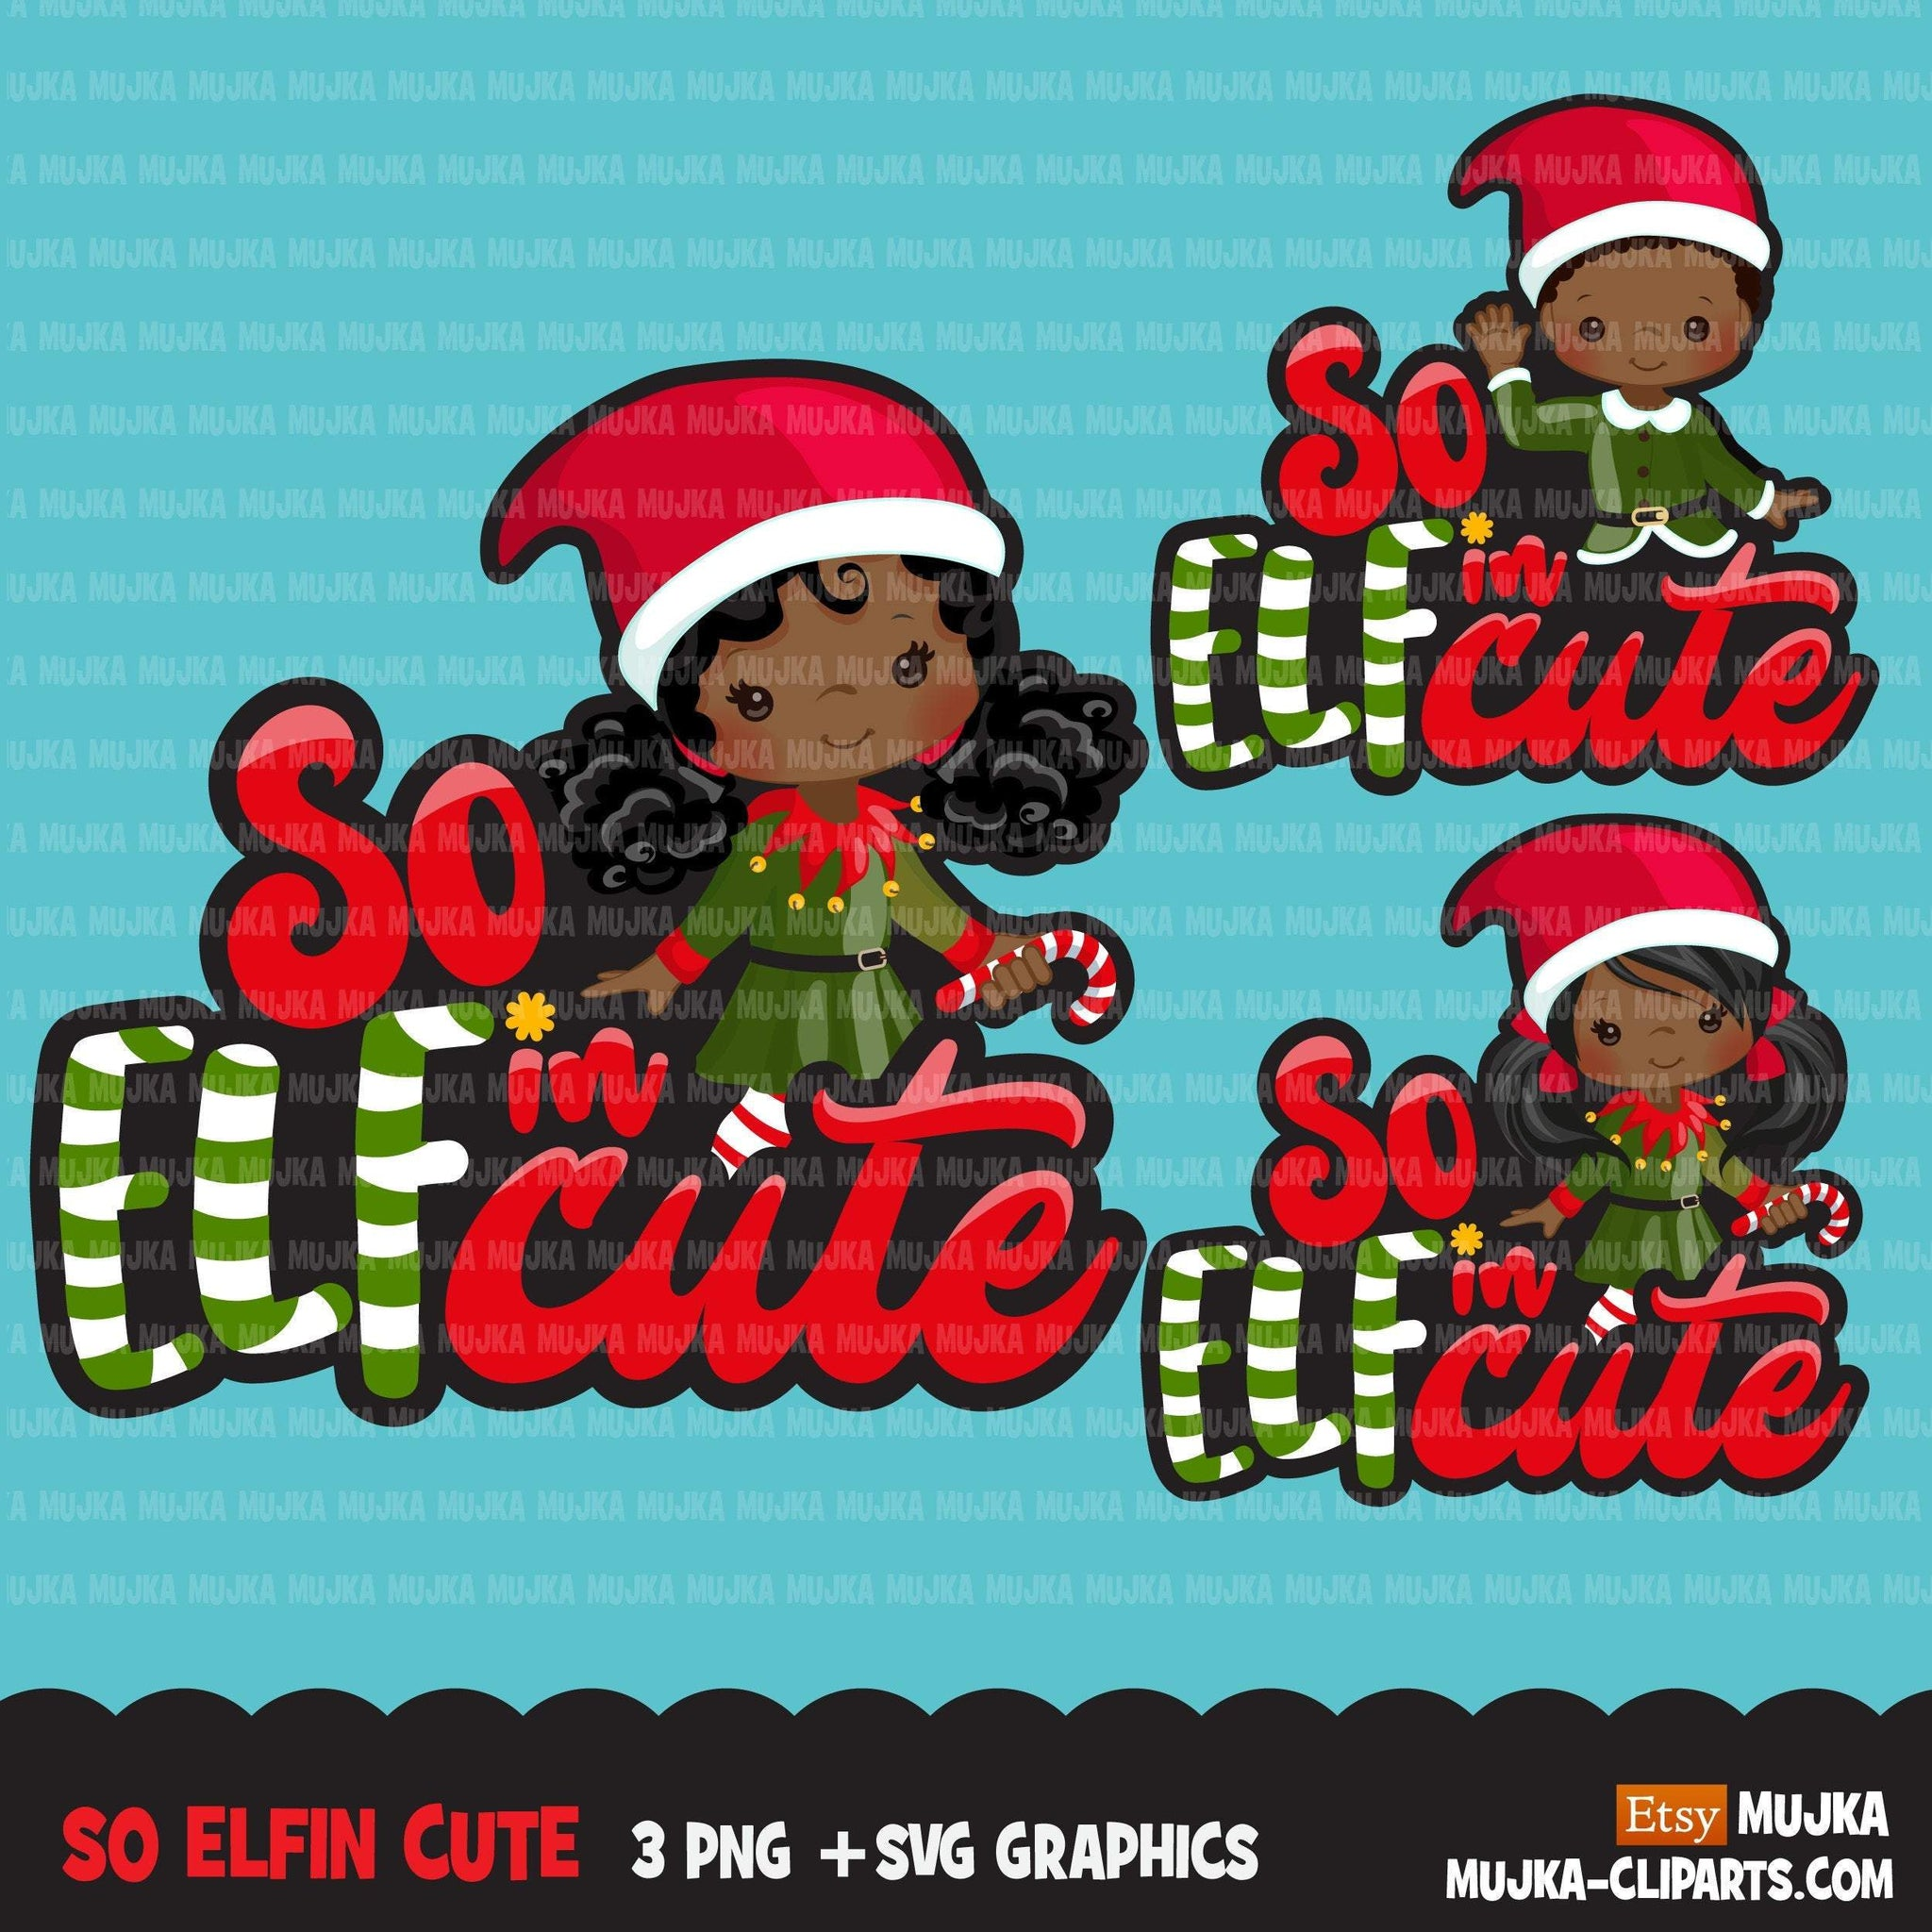 Christmas PNG digital, So Elfin Cute Printable HTV sublimation image transfer clipart, t-shirt Afro black girl graphics